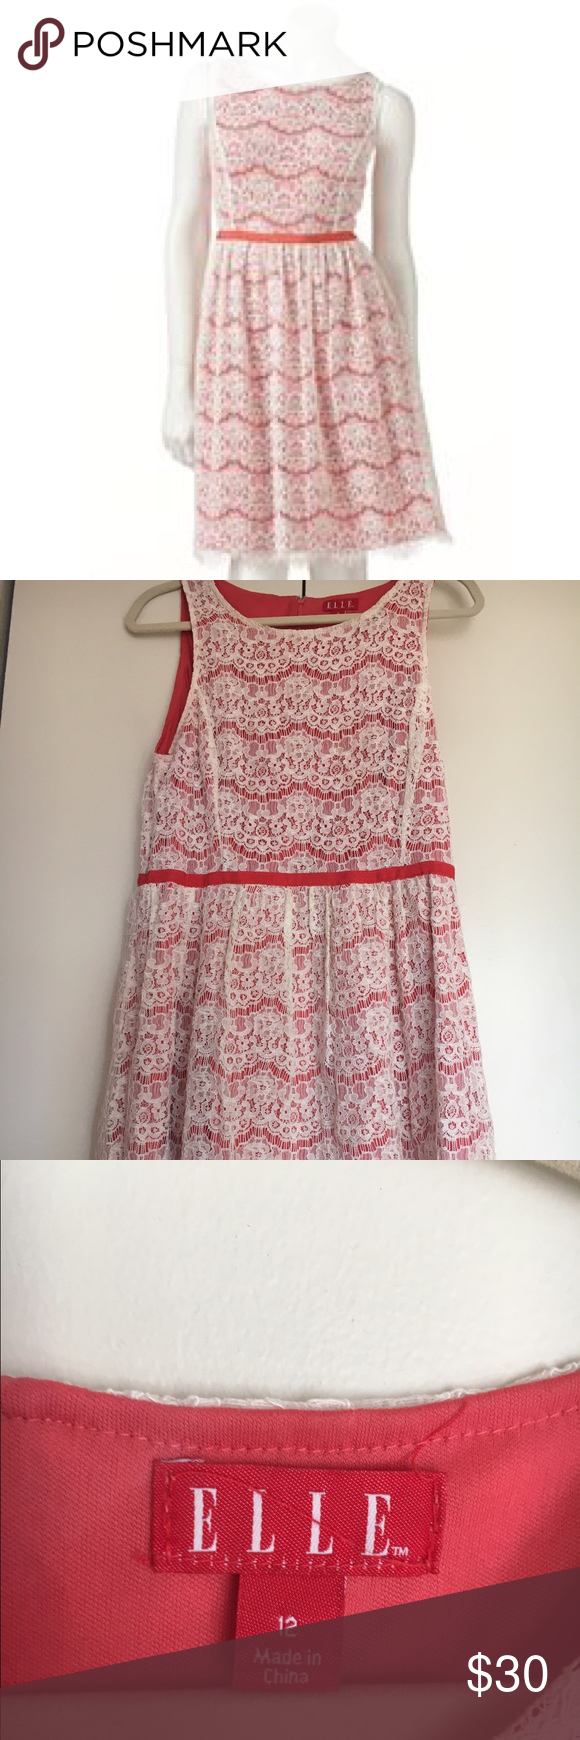 Elle coral dress with lace overlay Beautifully pretty coral dress with classic lace overlay. Perfect for casual wear and formal wear. Worn a few times but in great condition! Perfectly paired with my Elle coral blazer. Elle Dresses Midi